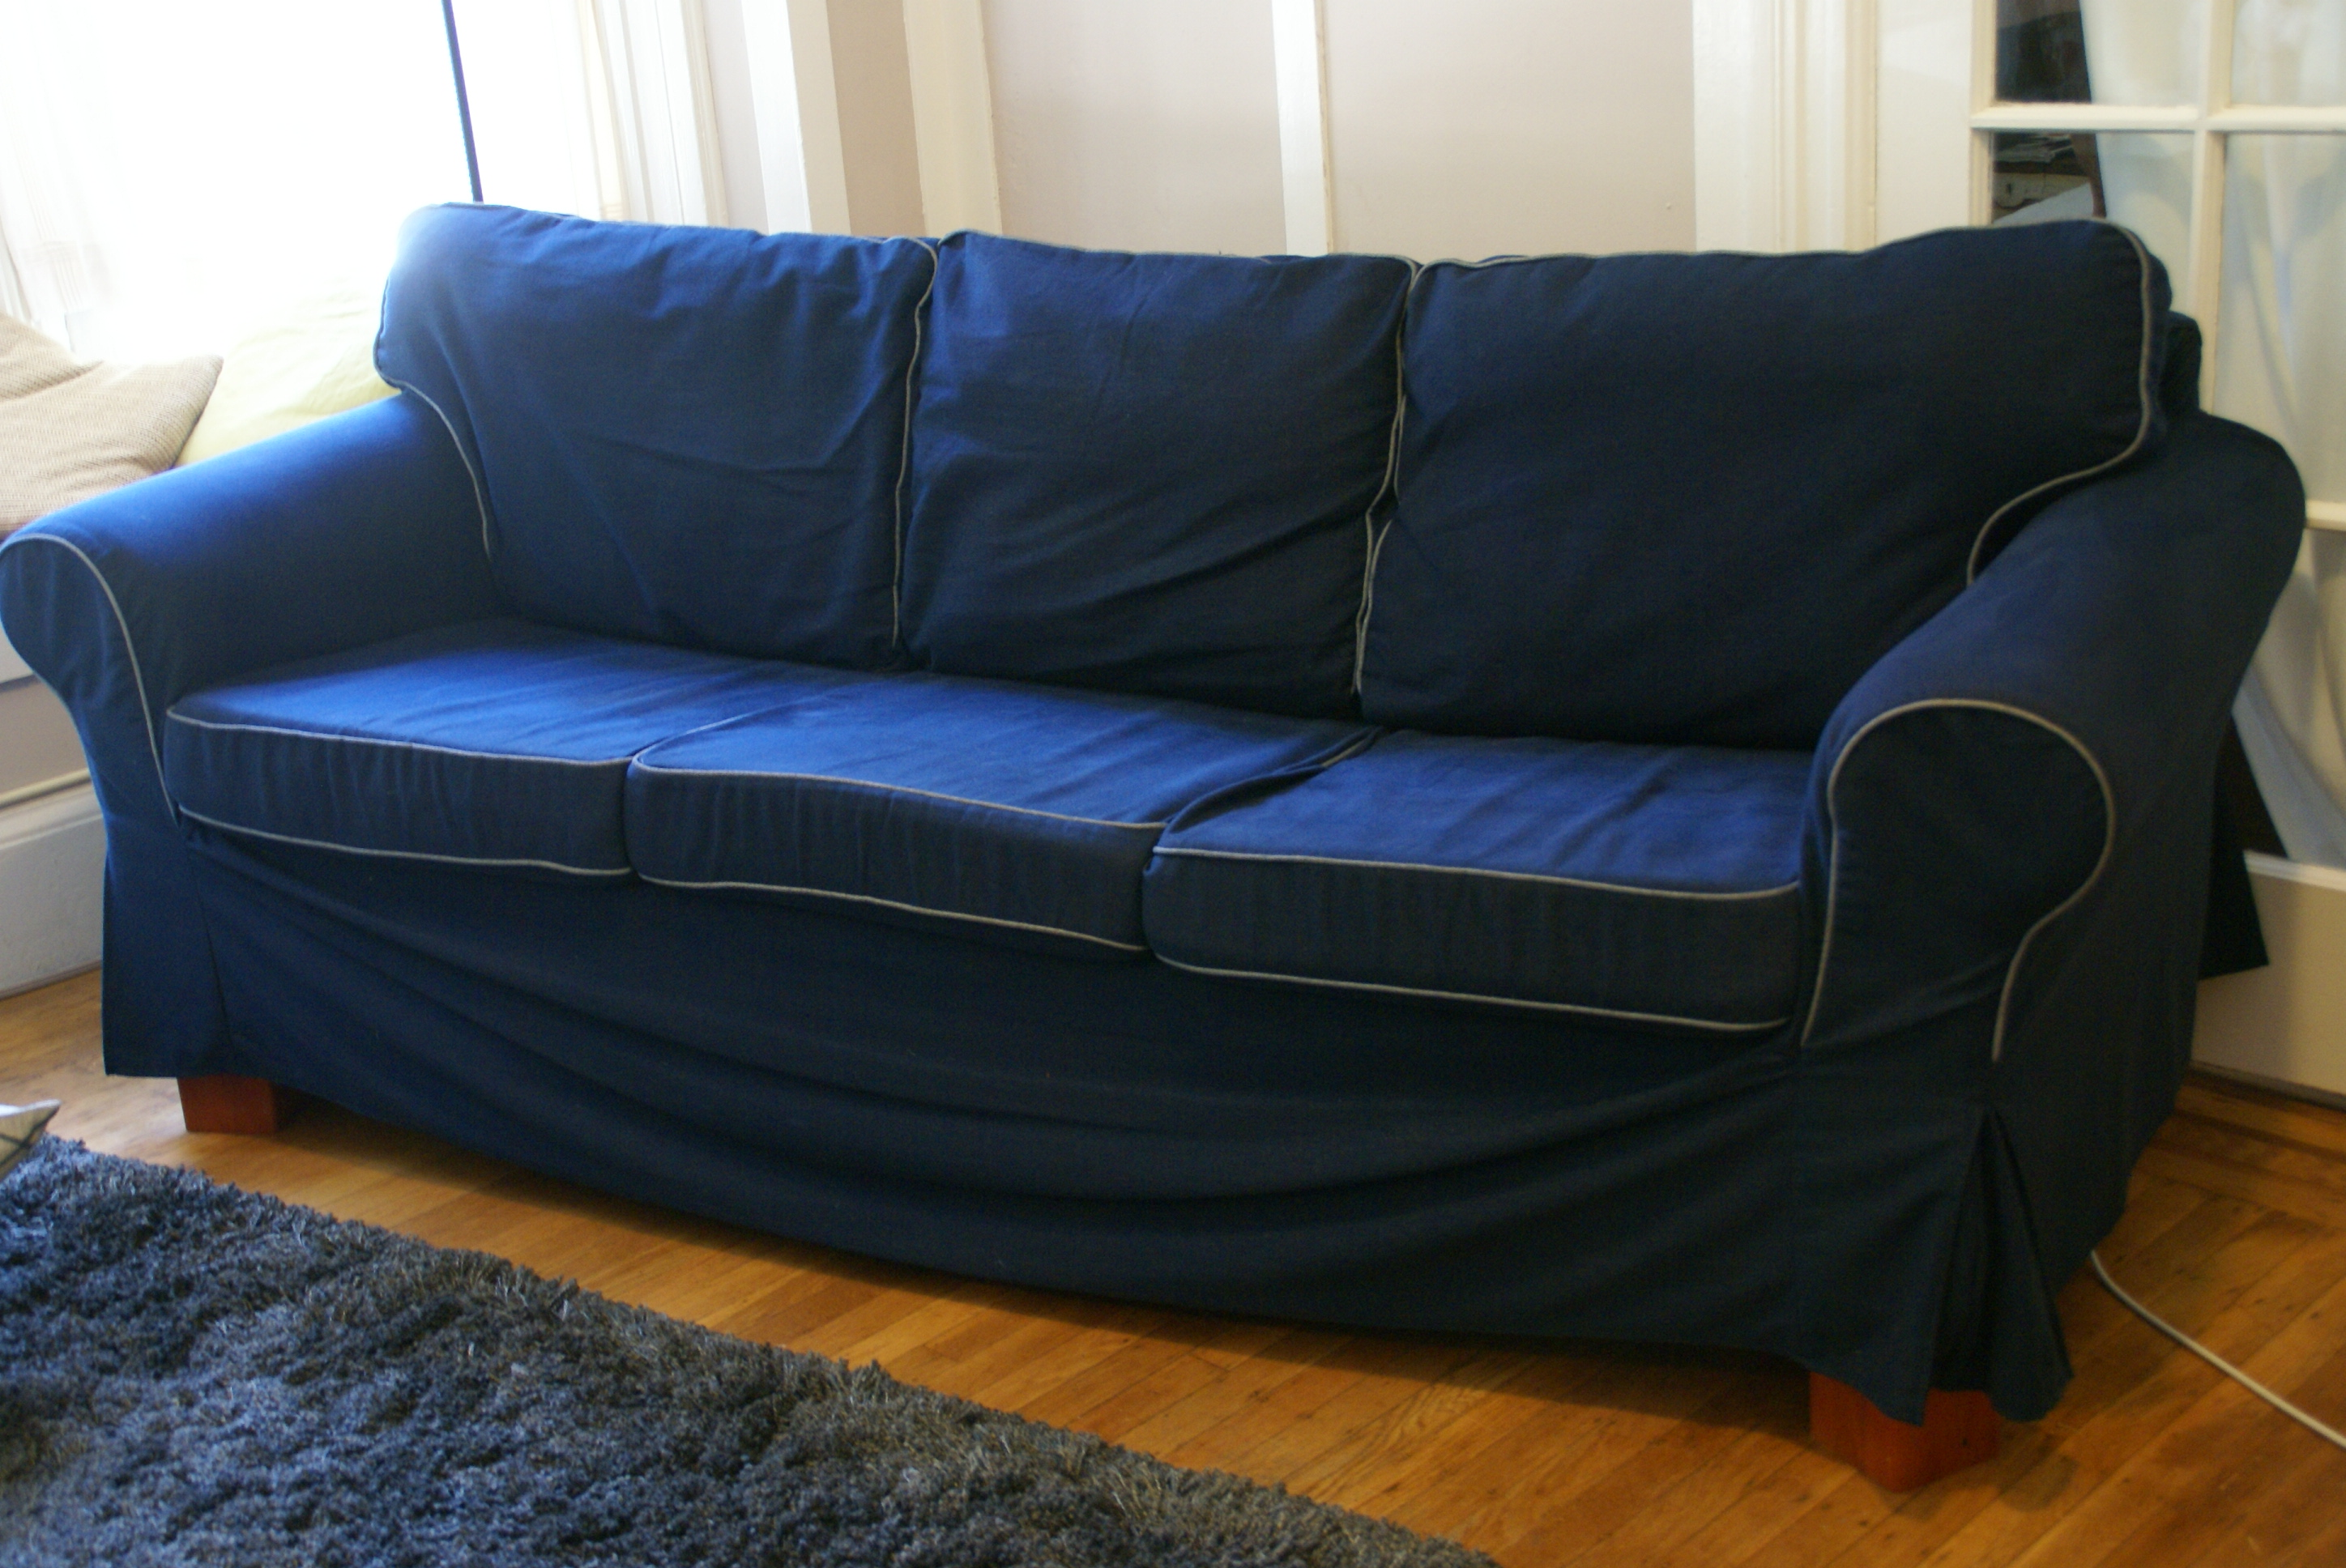 Prime Blue Sofas Ikea King Sofa Frankydiablos Diy Chair Ideas Frankydiabloscom